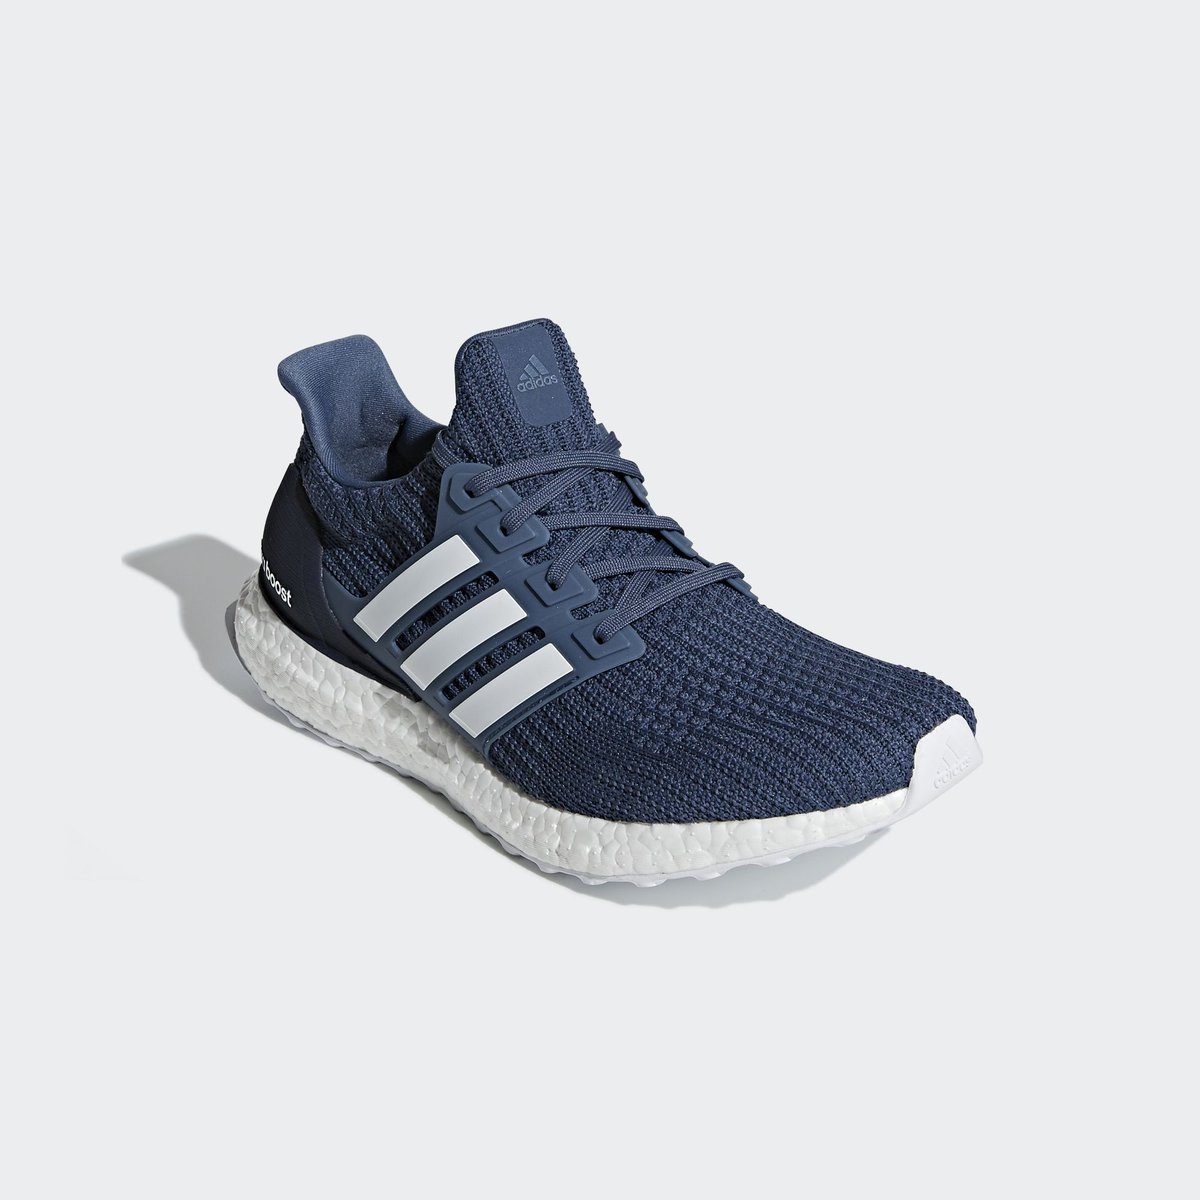 201aadba091 Now available on  adidas US. adidas Ultra Boost 4.0 Show Your Stripes. —   http   bit.ly 2gWvuEY pic.twitter.com AbYNw0VjDD